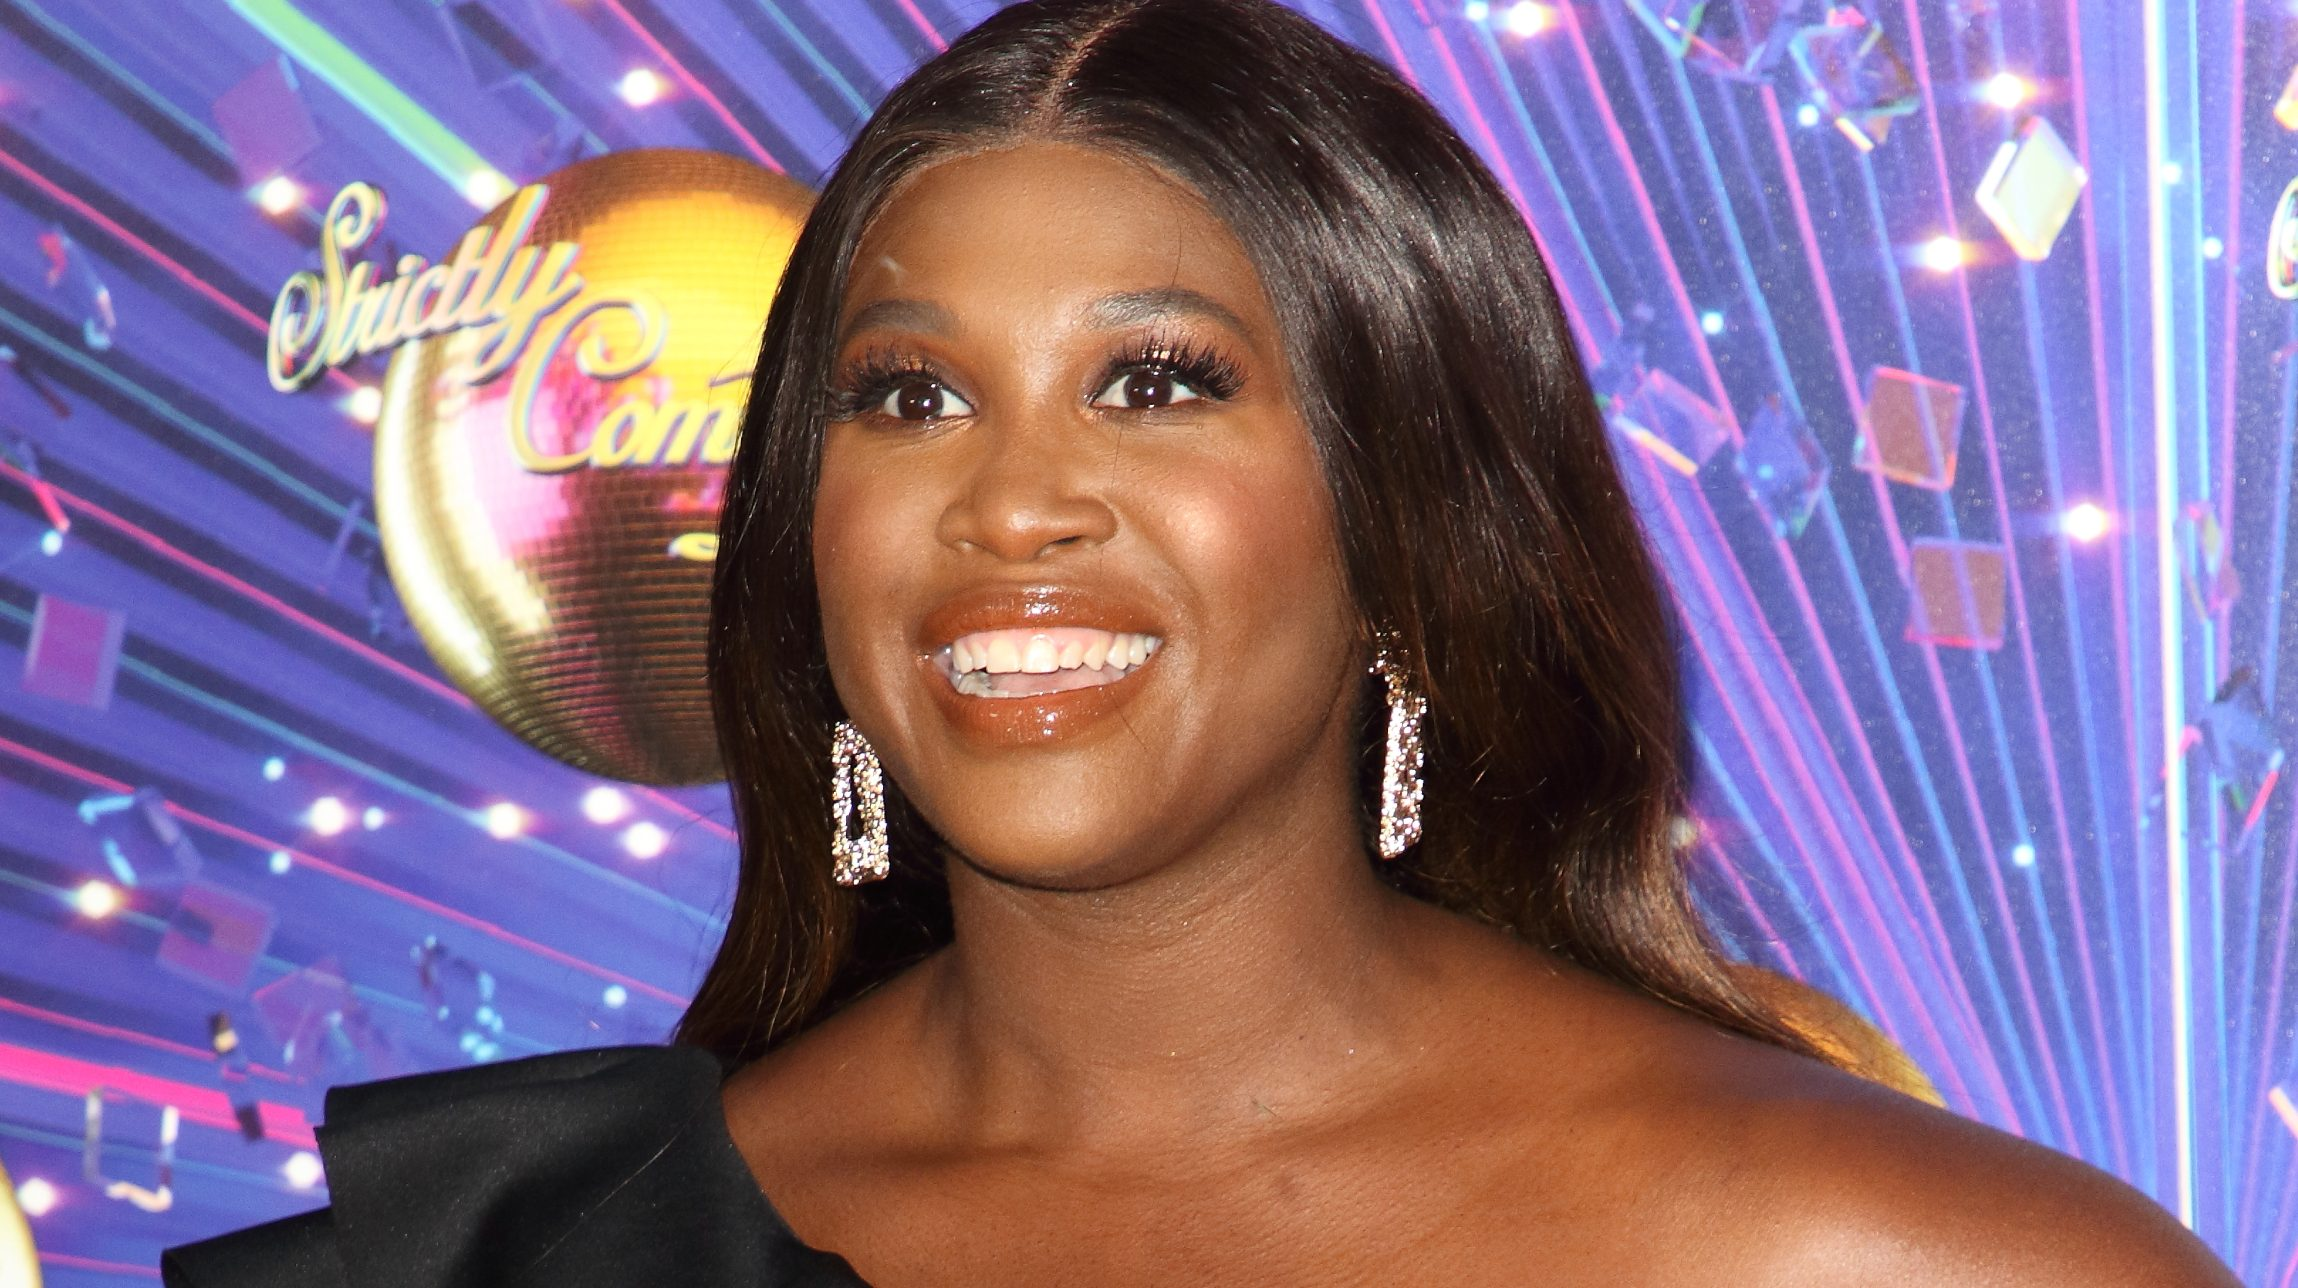 Strictly Come Dancing judge Motsi Mabuse hits back at Louie Spence for 'tick-box' comment